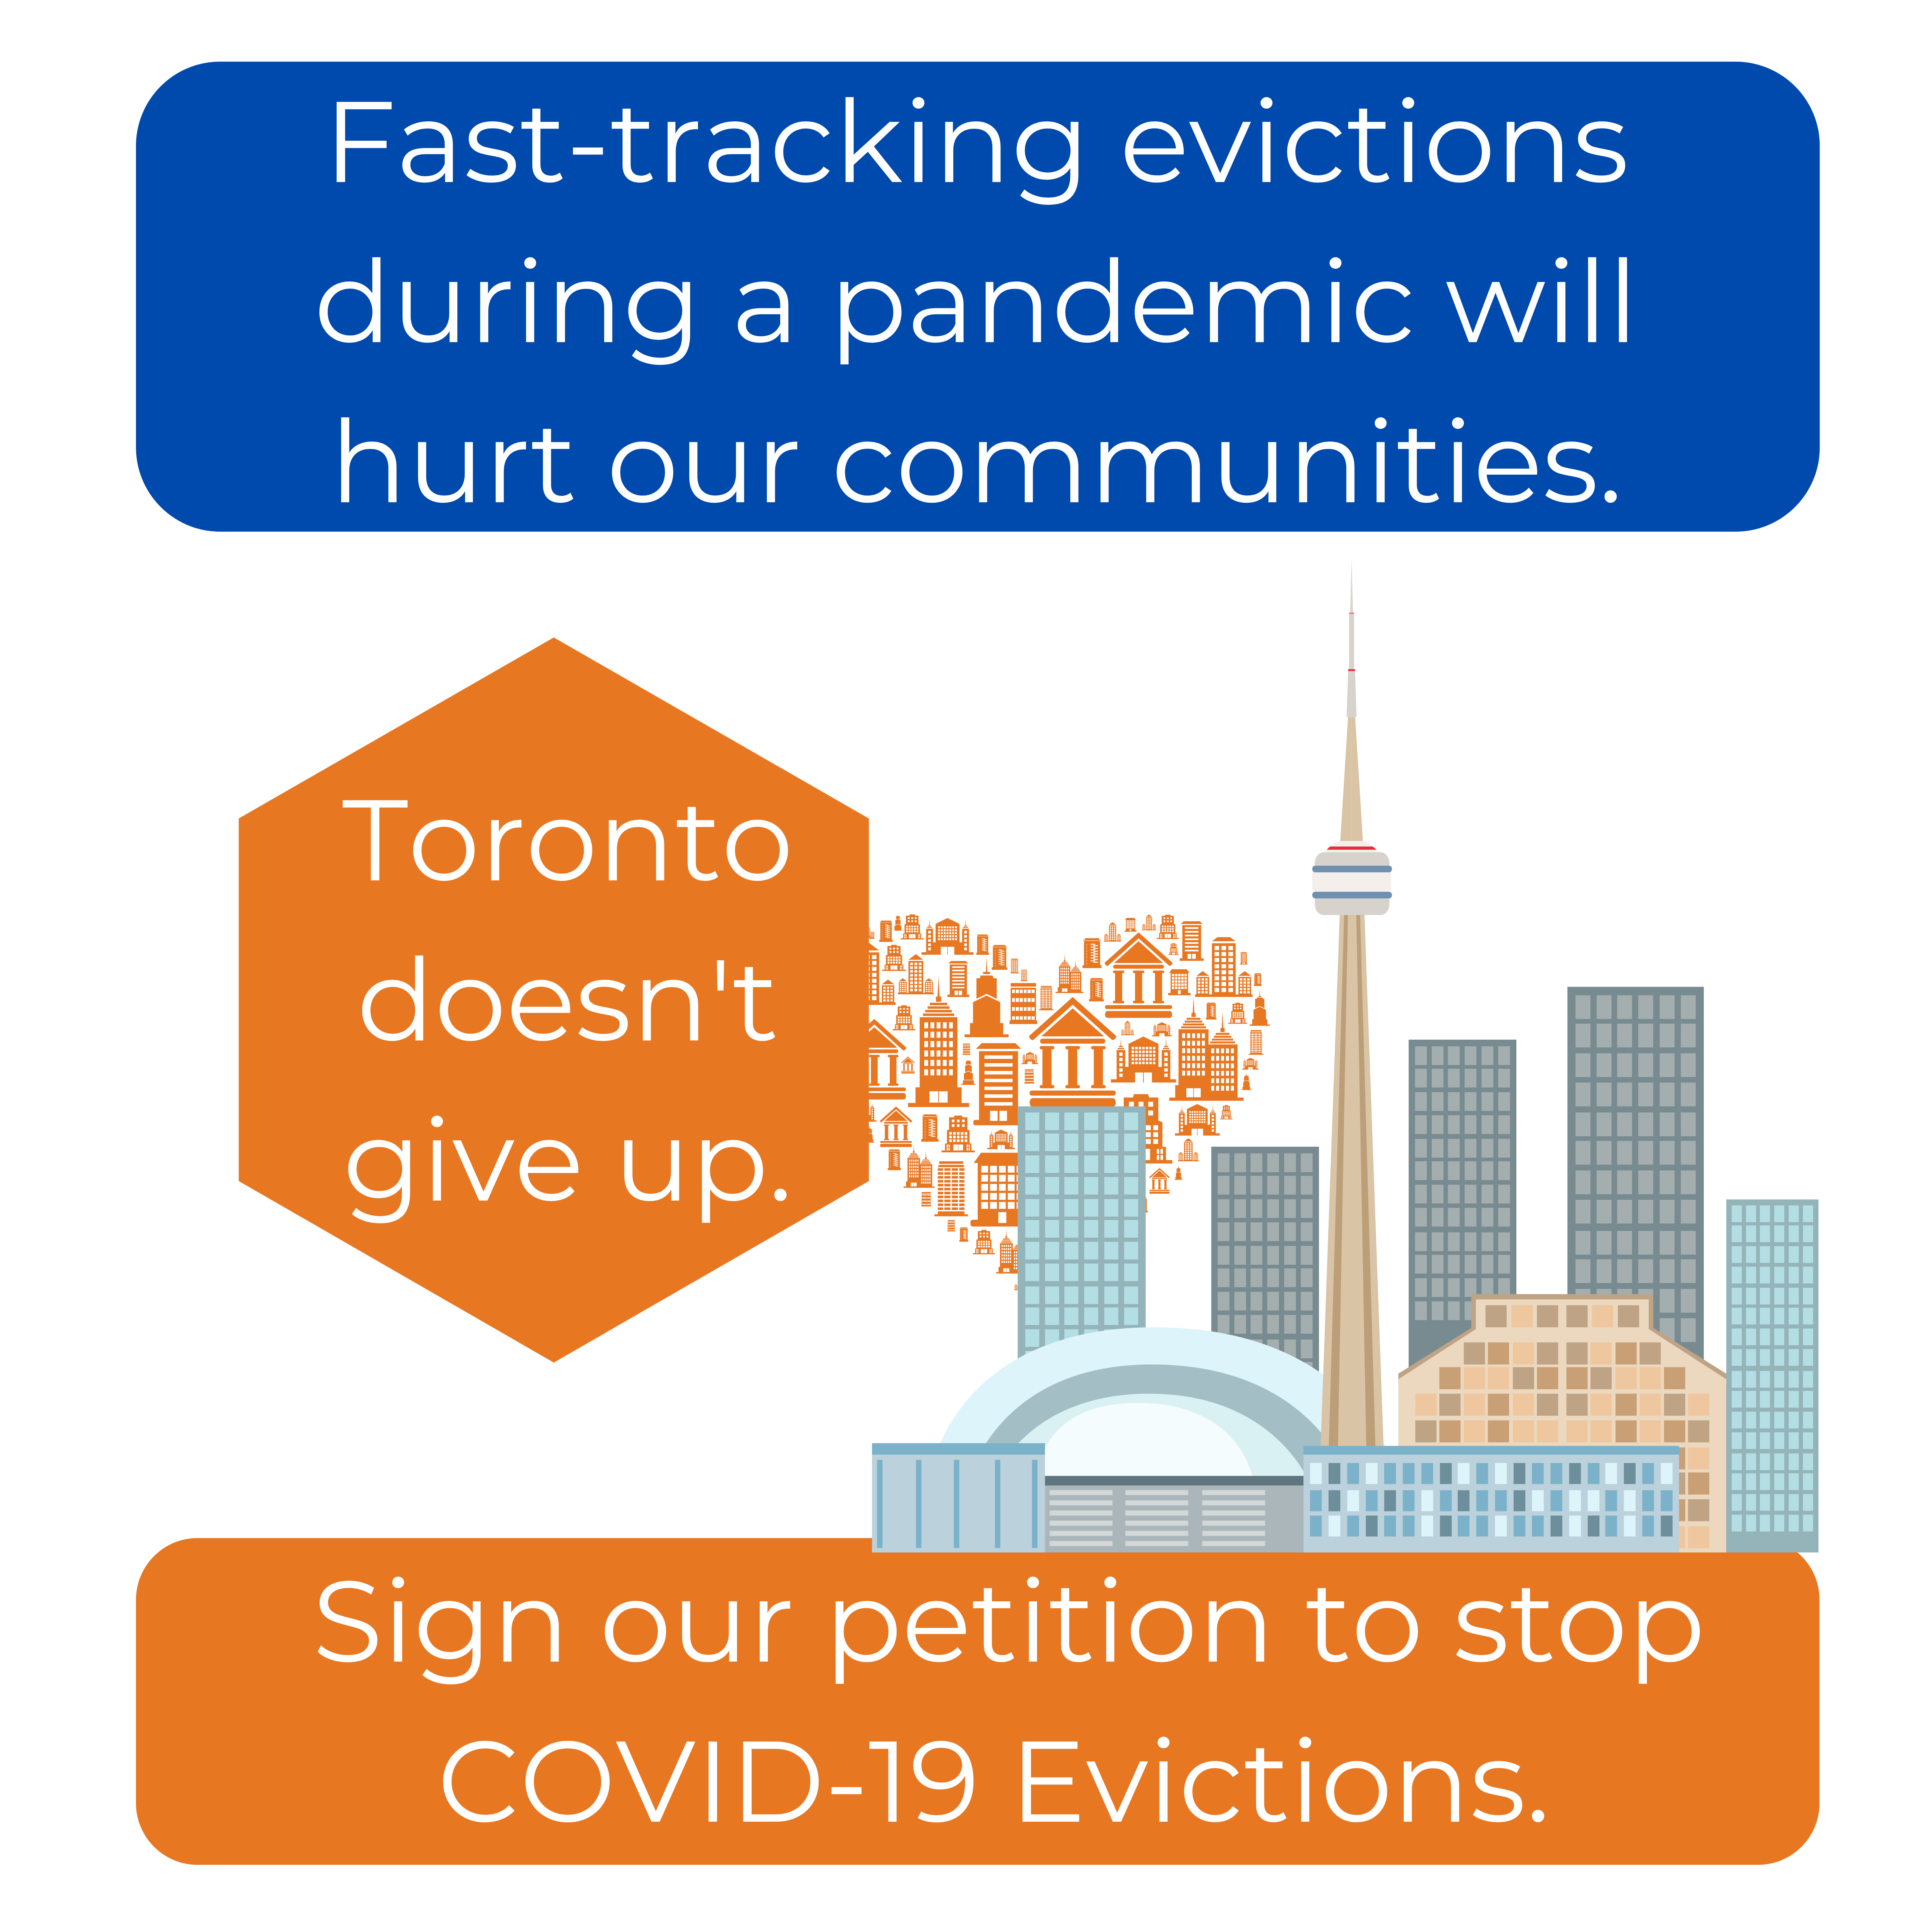 Fast-tracking evictions during a pandemic will hurt our communities. Sign our petition to stop COVID-19 Evictions.